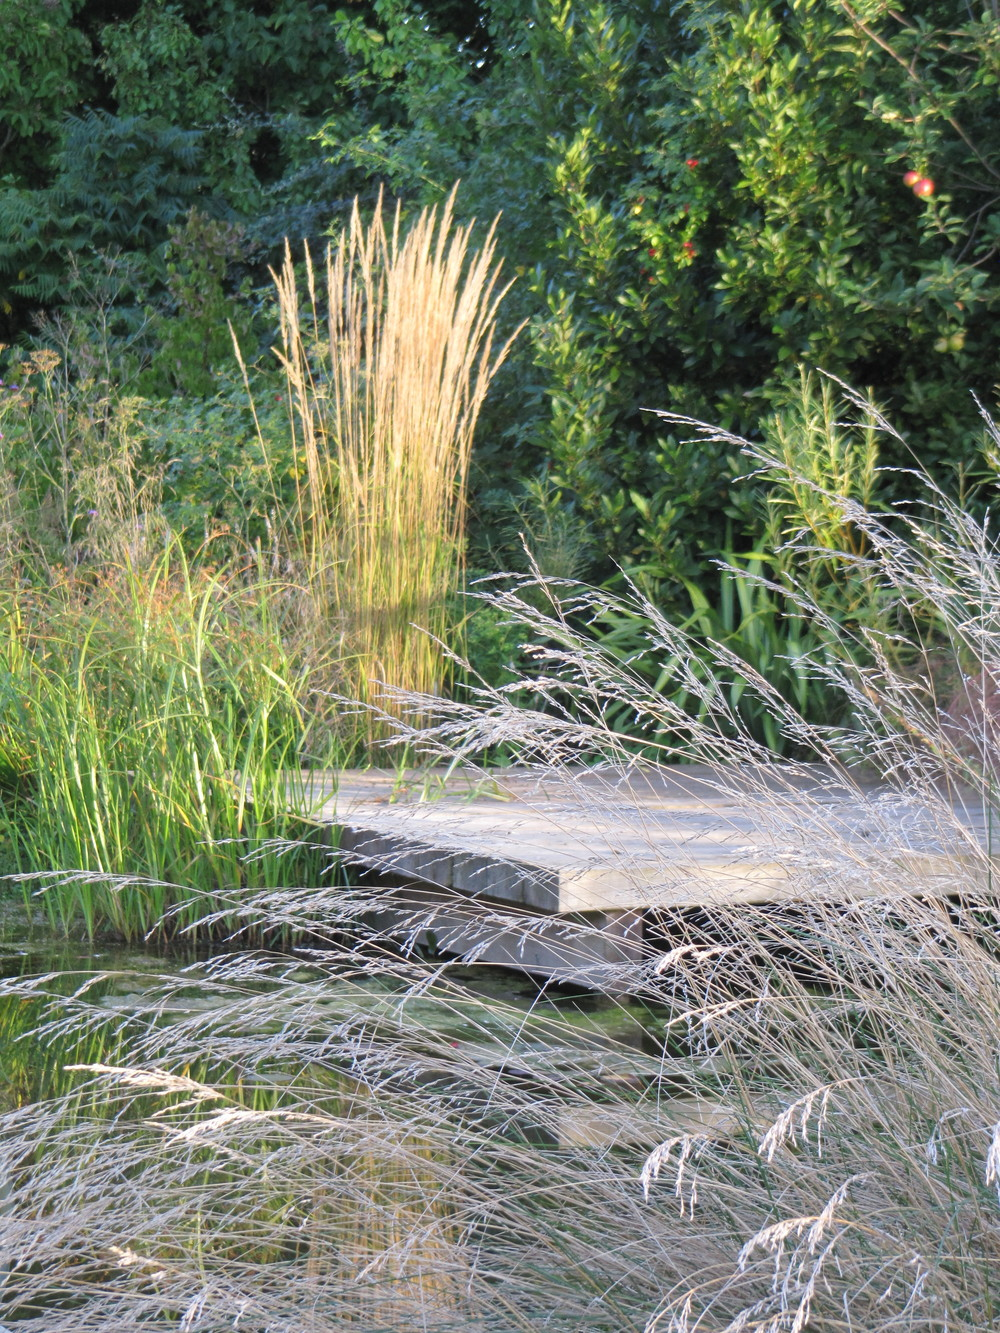 Calamagrostis 'Karl Foerster' behind a garden deck with Deschampsia cespitosa in front.